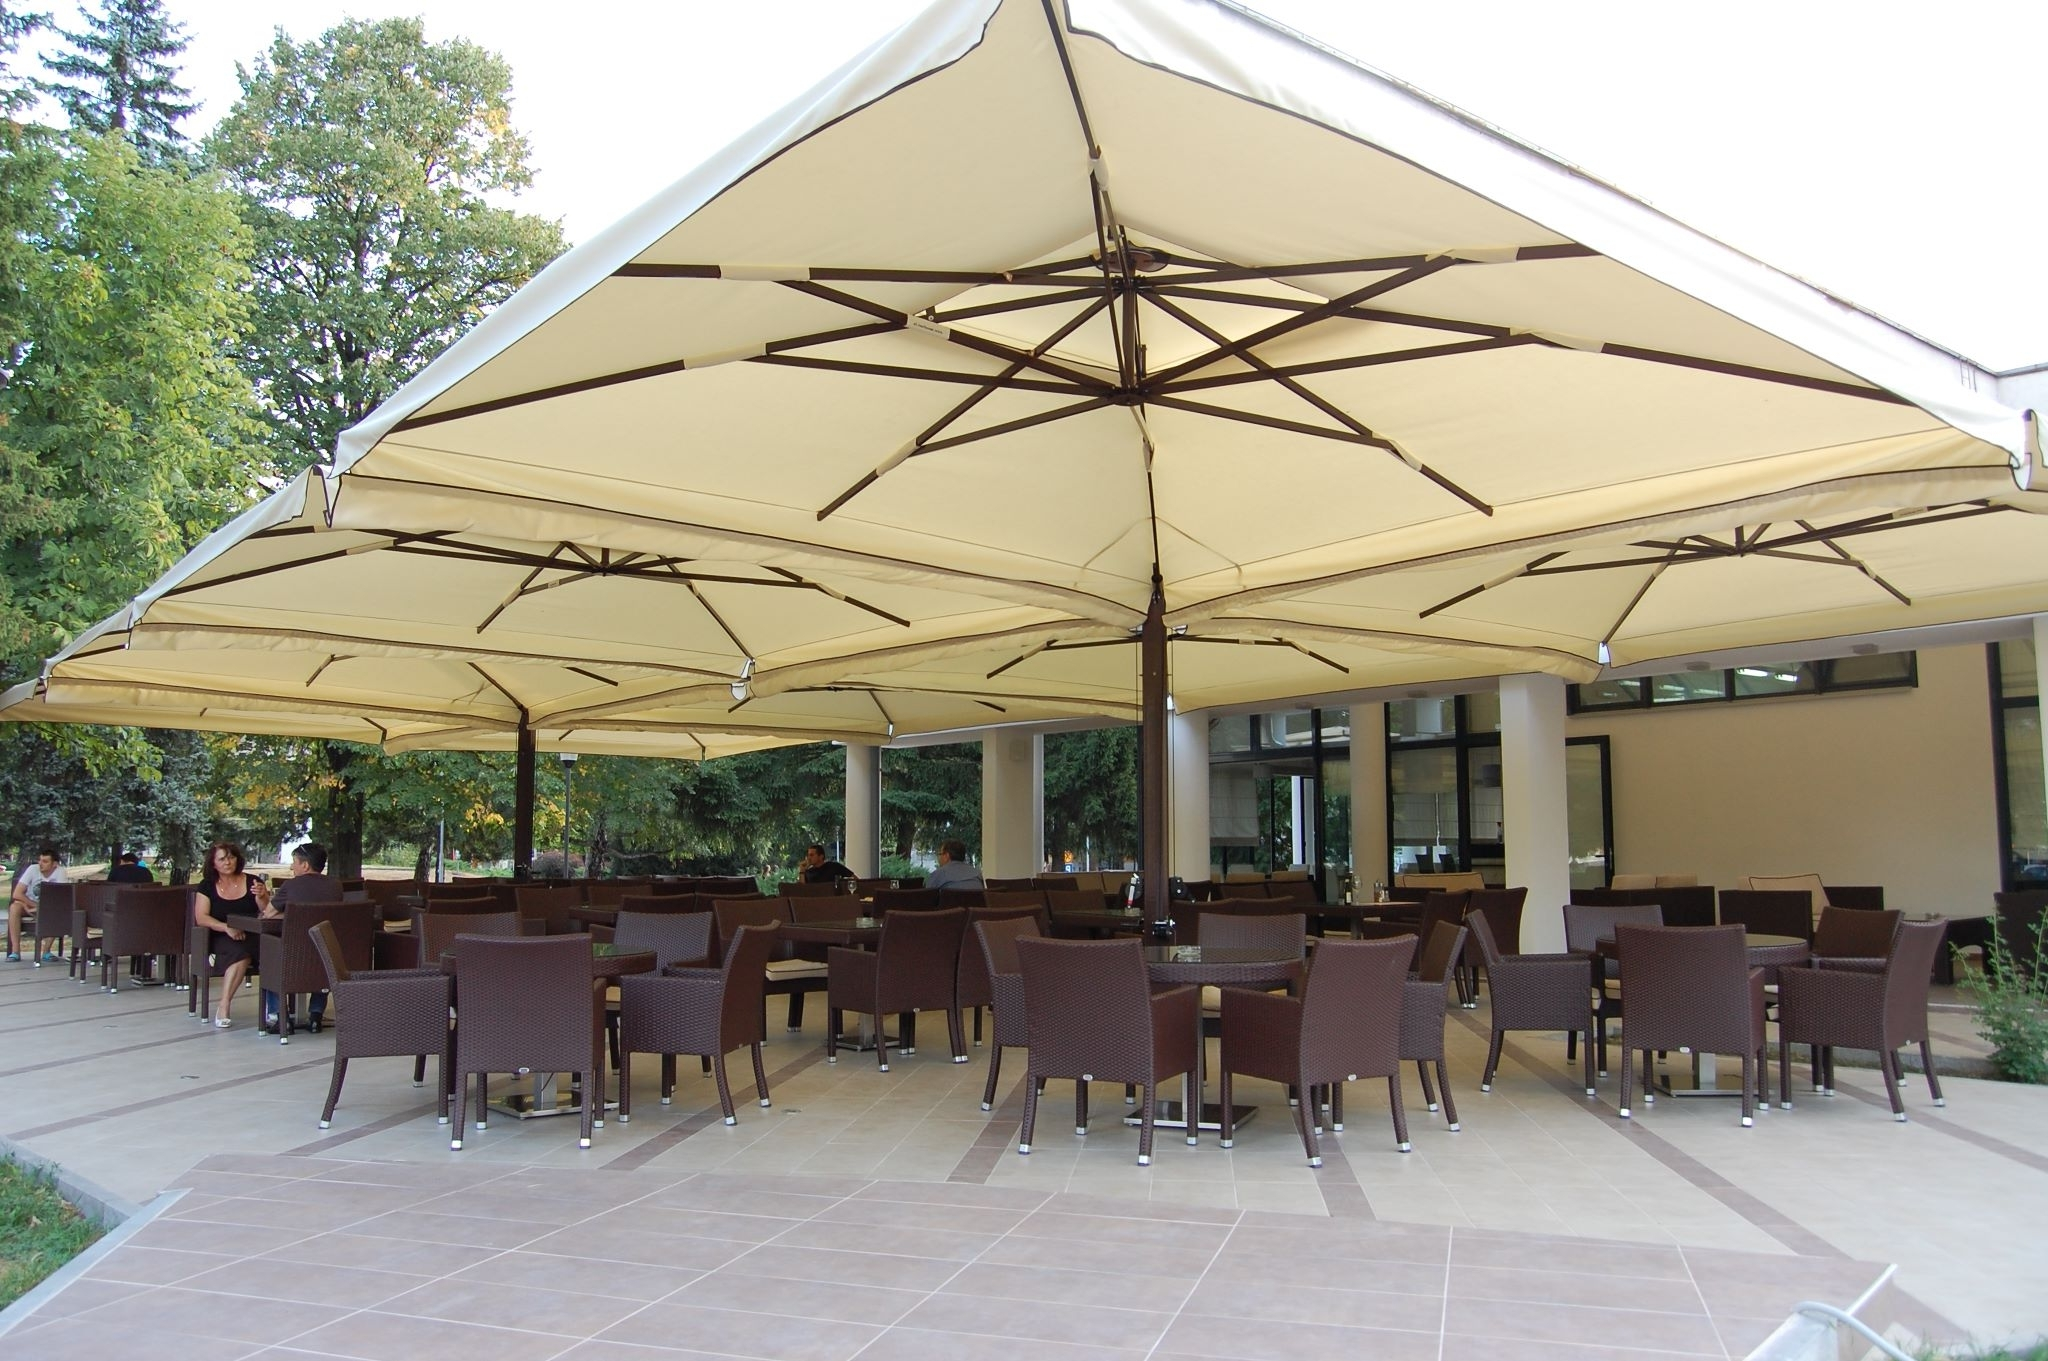 Well Known Commercial Patio Umbrellas For Restaurants, Resorts & Events With Regard To European Patio Umbrellas (View 20 of 20)